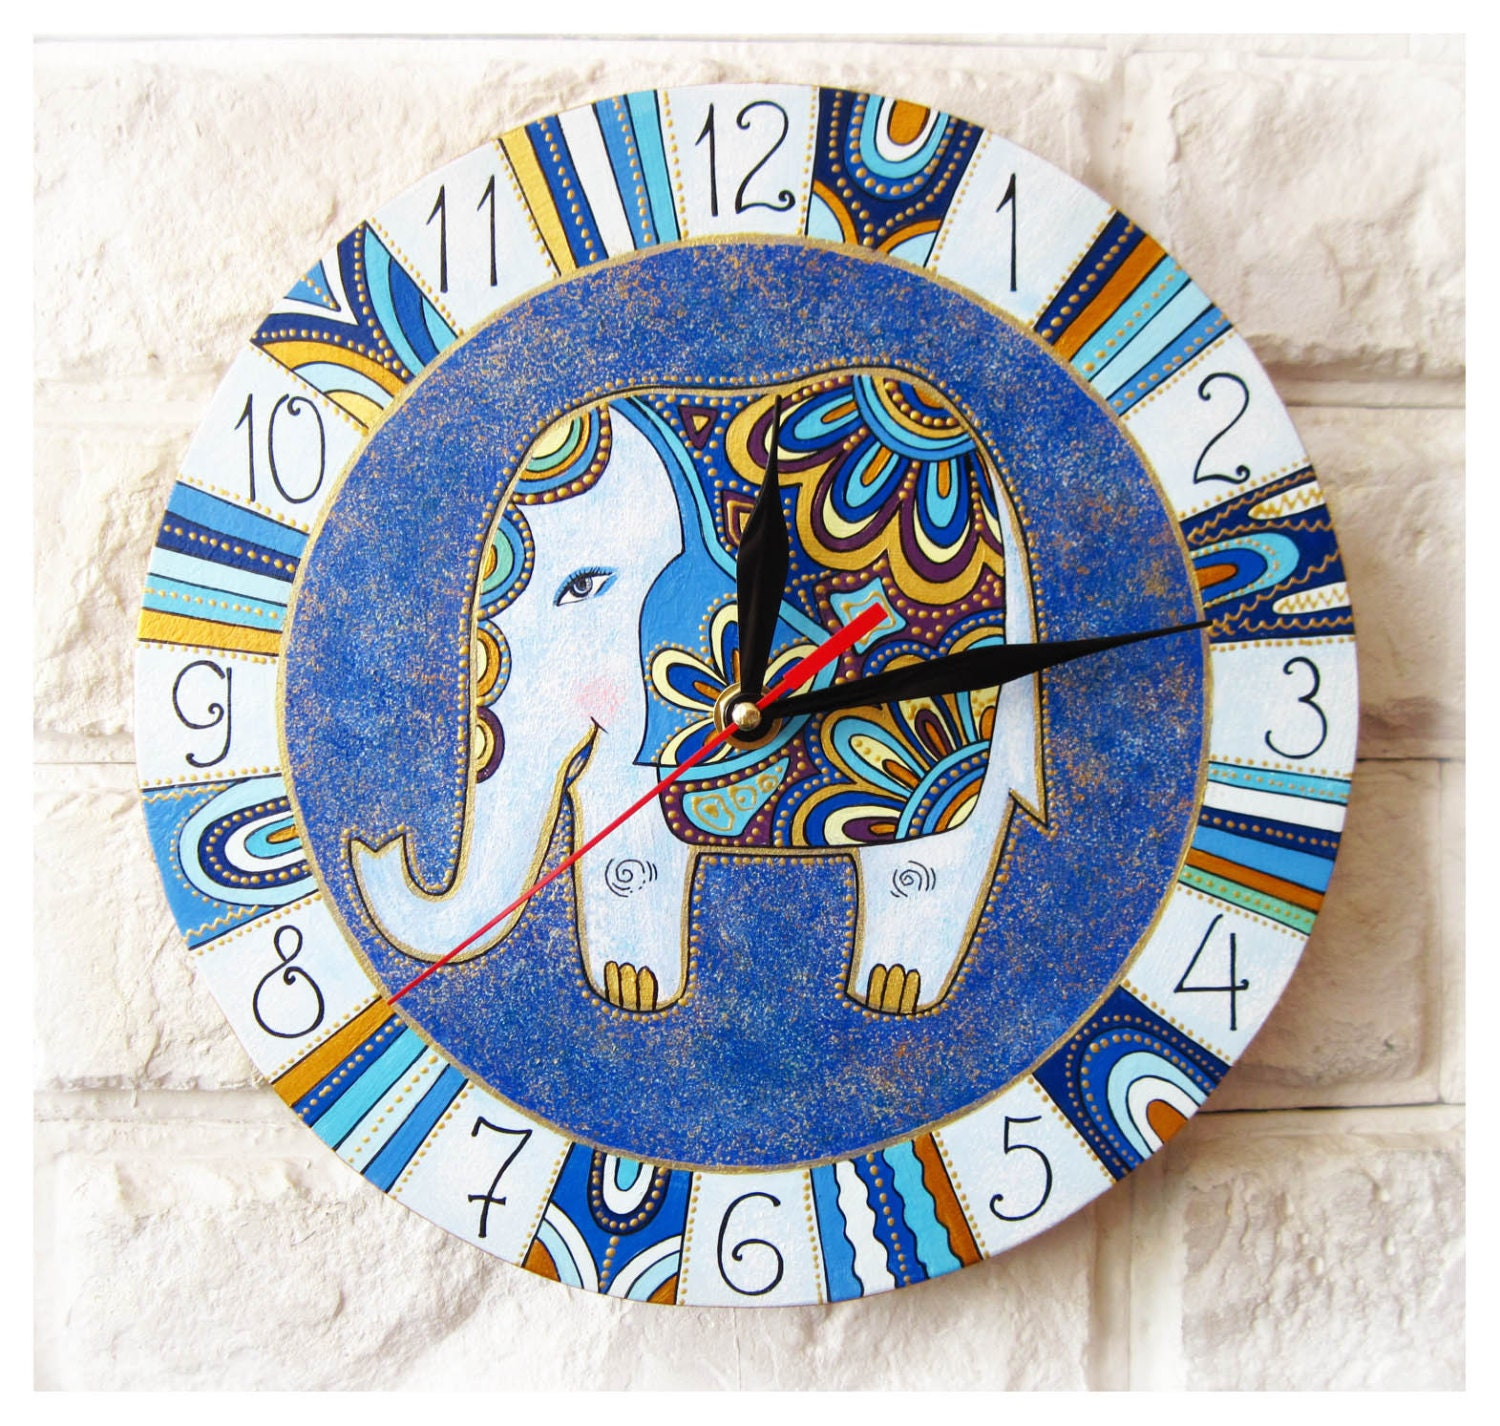 The Blue Elephant Wall Clock Home Decor For Children By Artclock